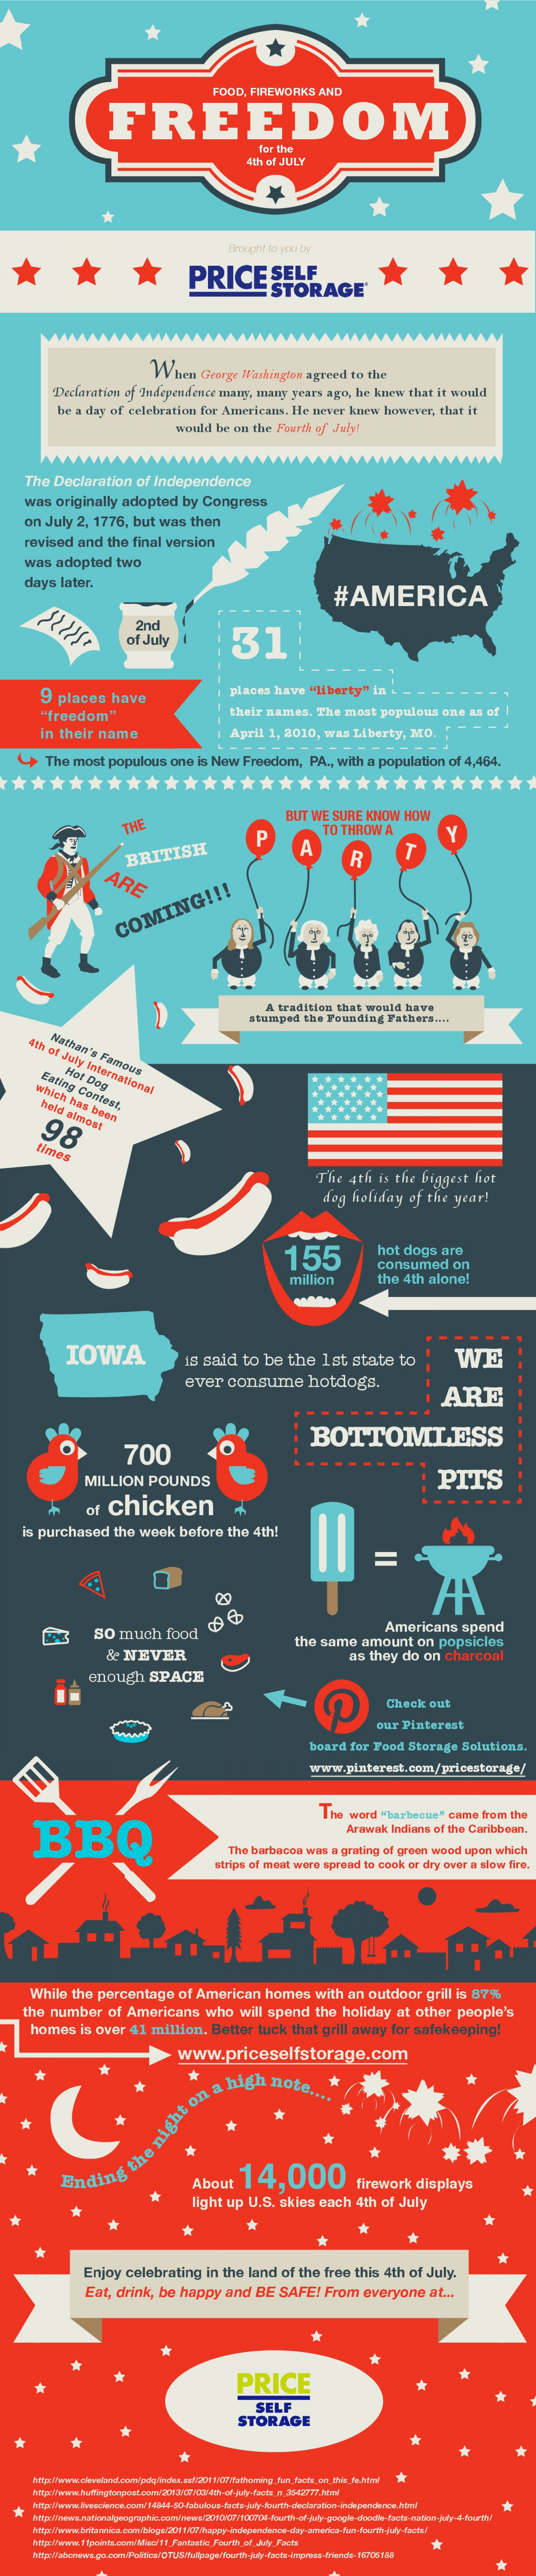 Food, Fireworks & Freedom For the 4th of July Infographic